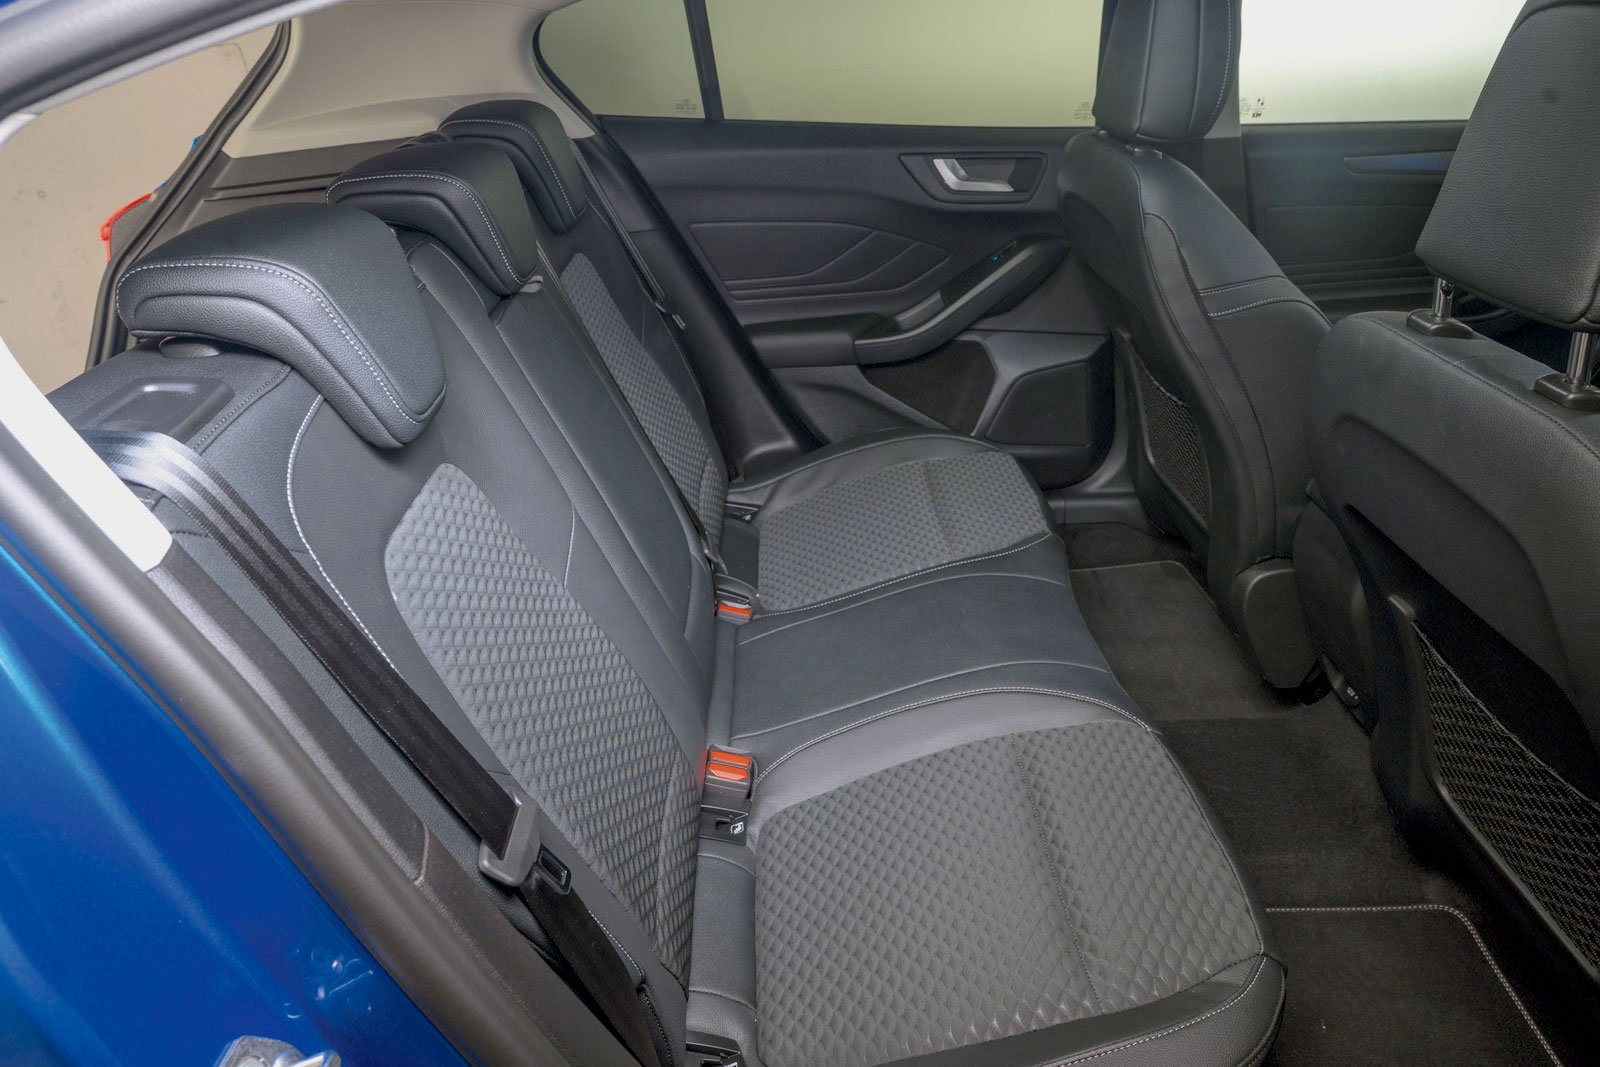 Ford Focus 2021 rear seats